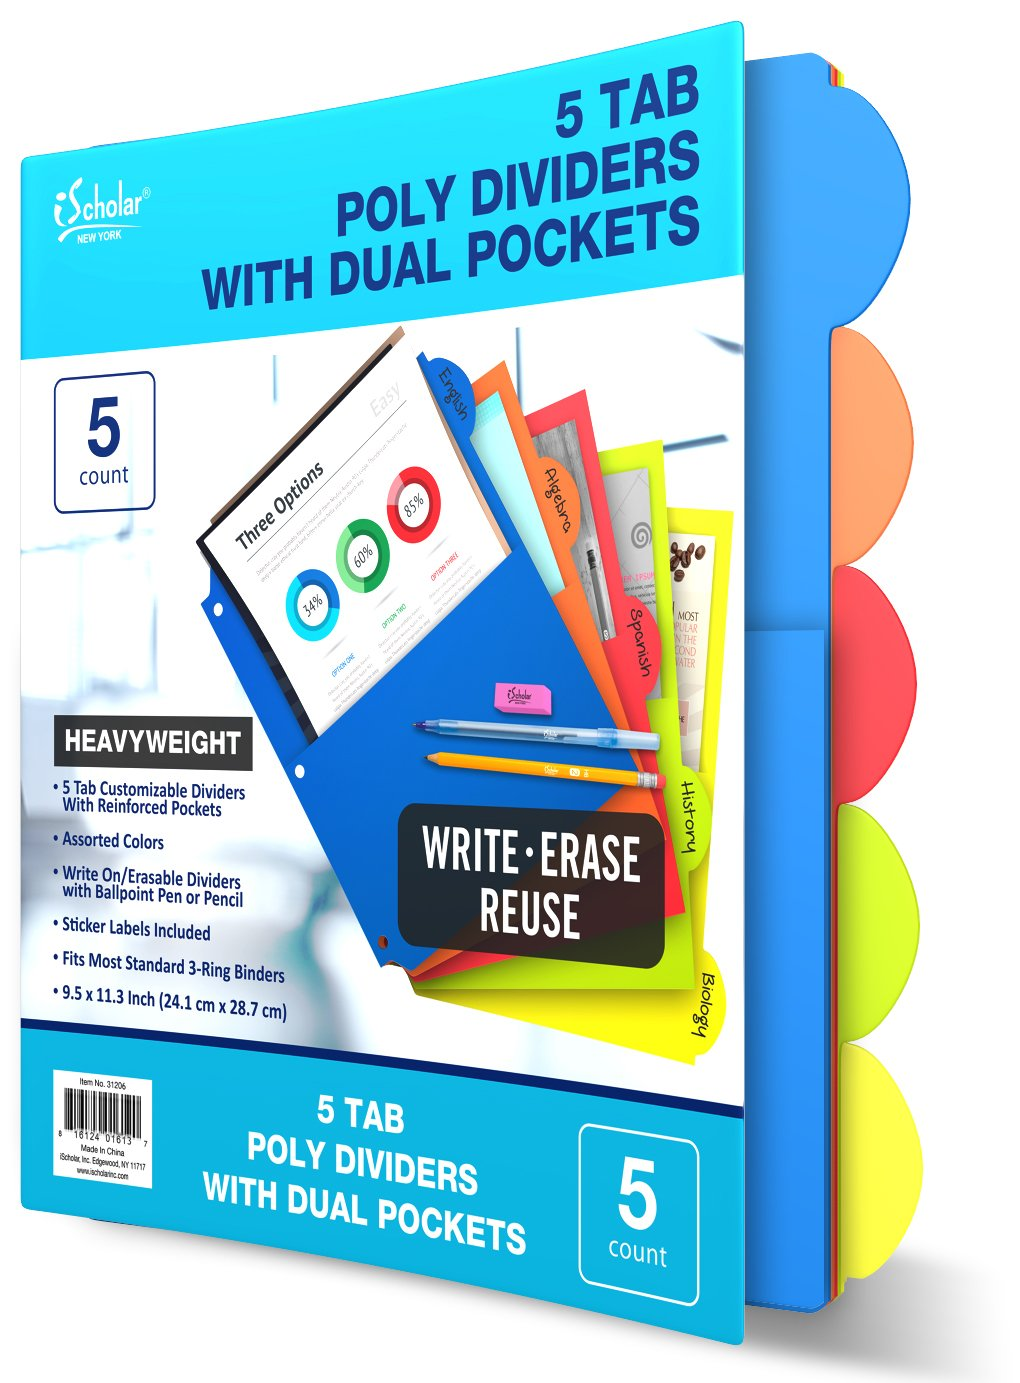 iScholar 5 Tab Poly Index Dividers with Pockets, 9.5 x 11.3'', Assorted Colors (31206)